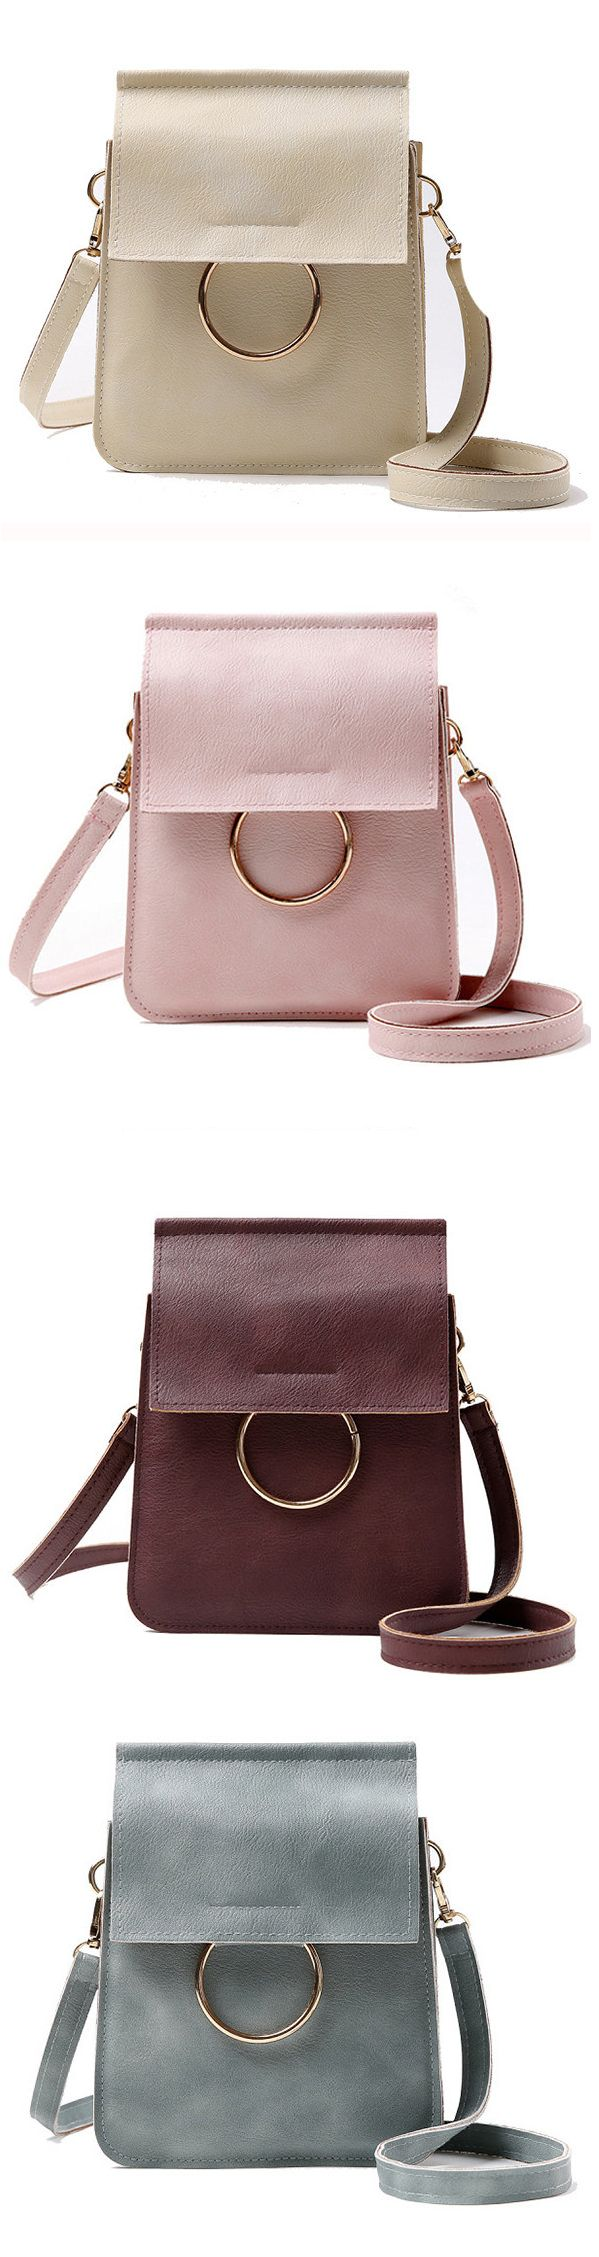 Girls Vintage Solid Color Crossbody Bag Smartphone Bag Little Shoulde Bag